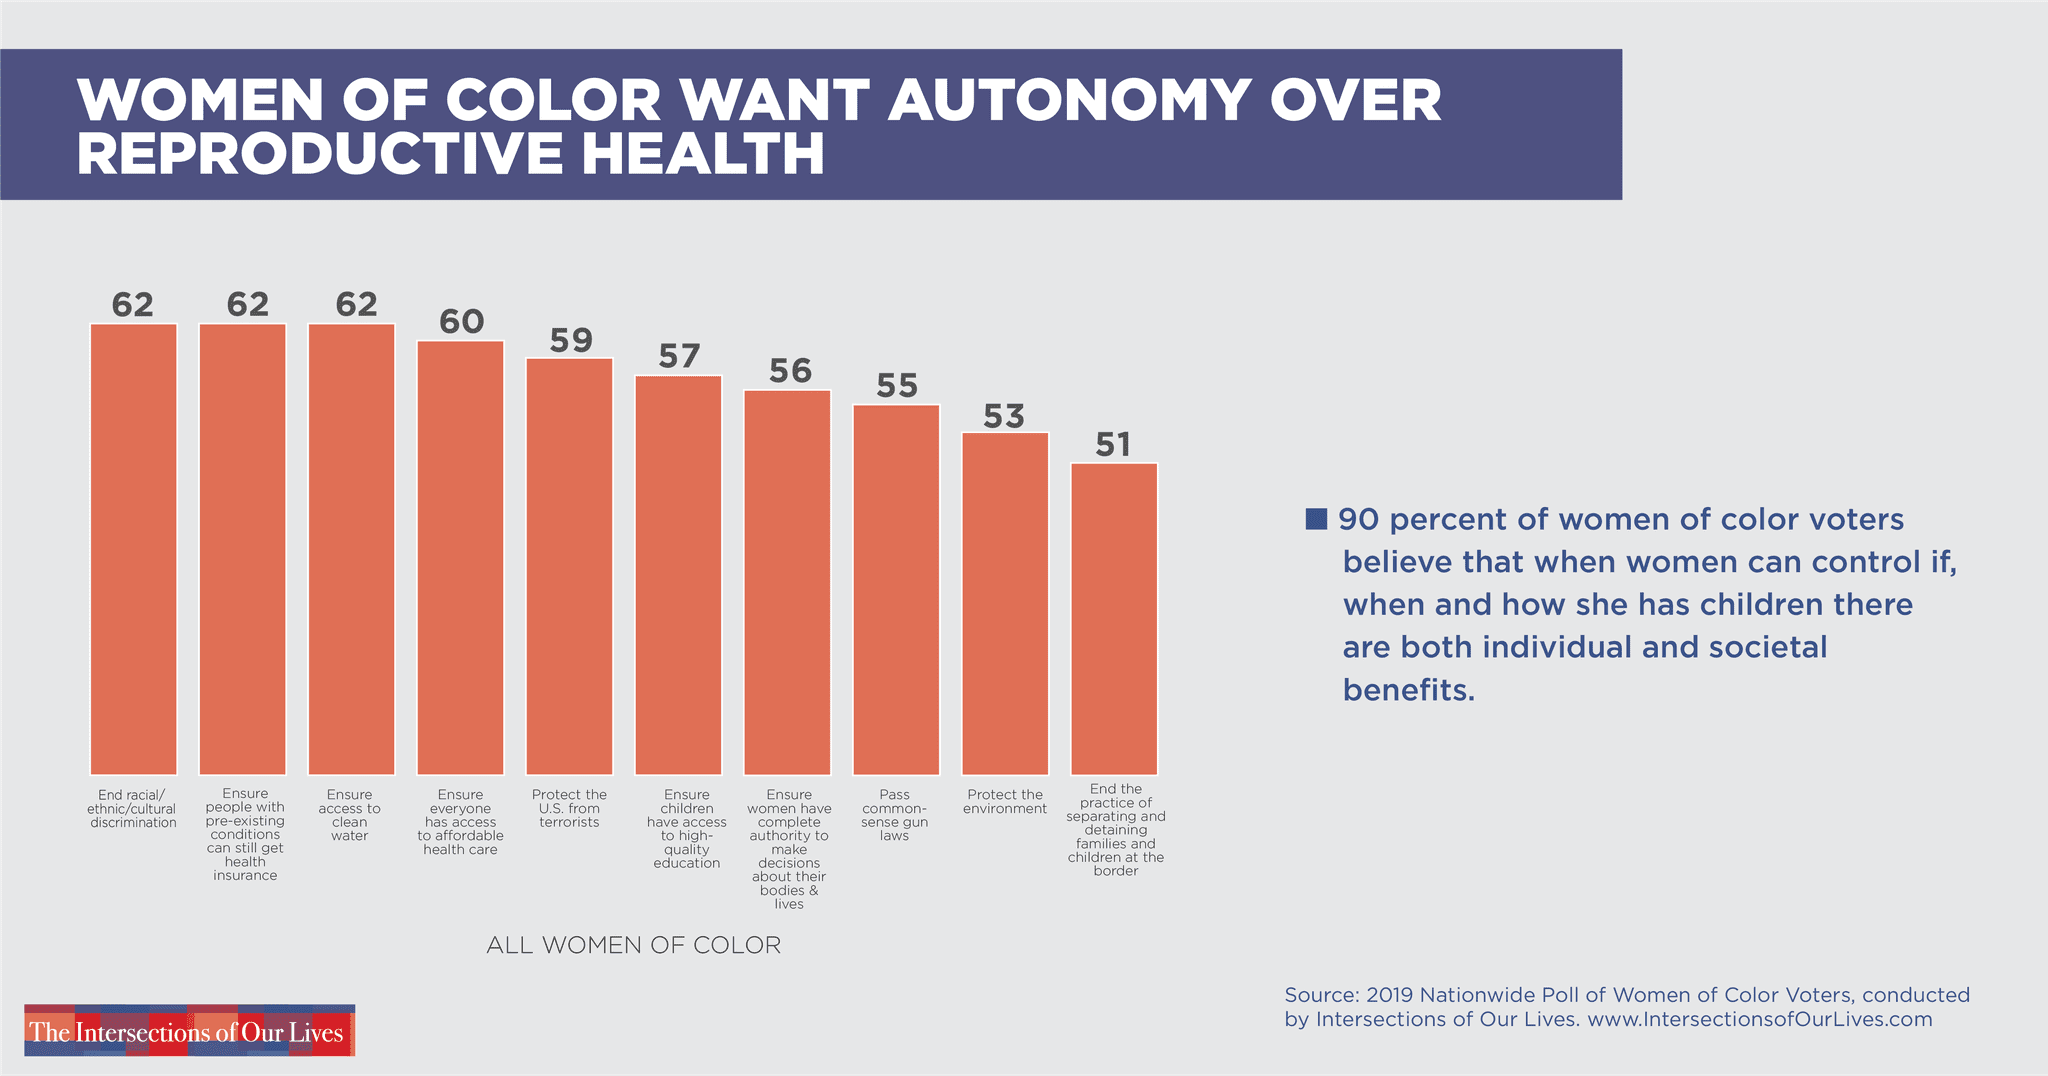 WOC want to make their own decisions about their bodies.